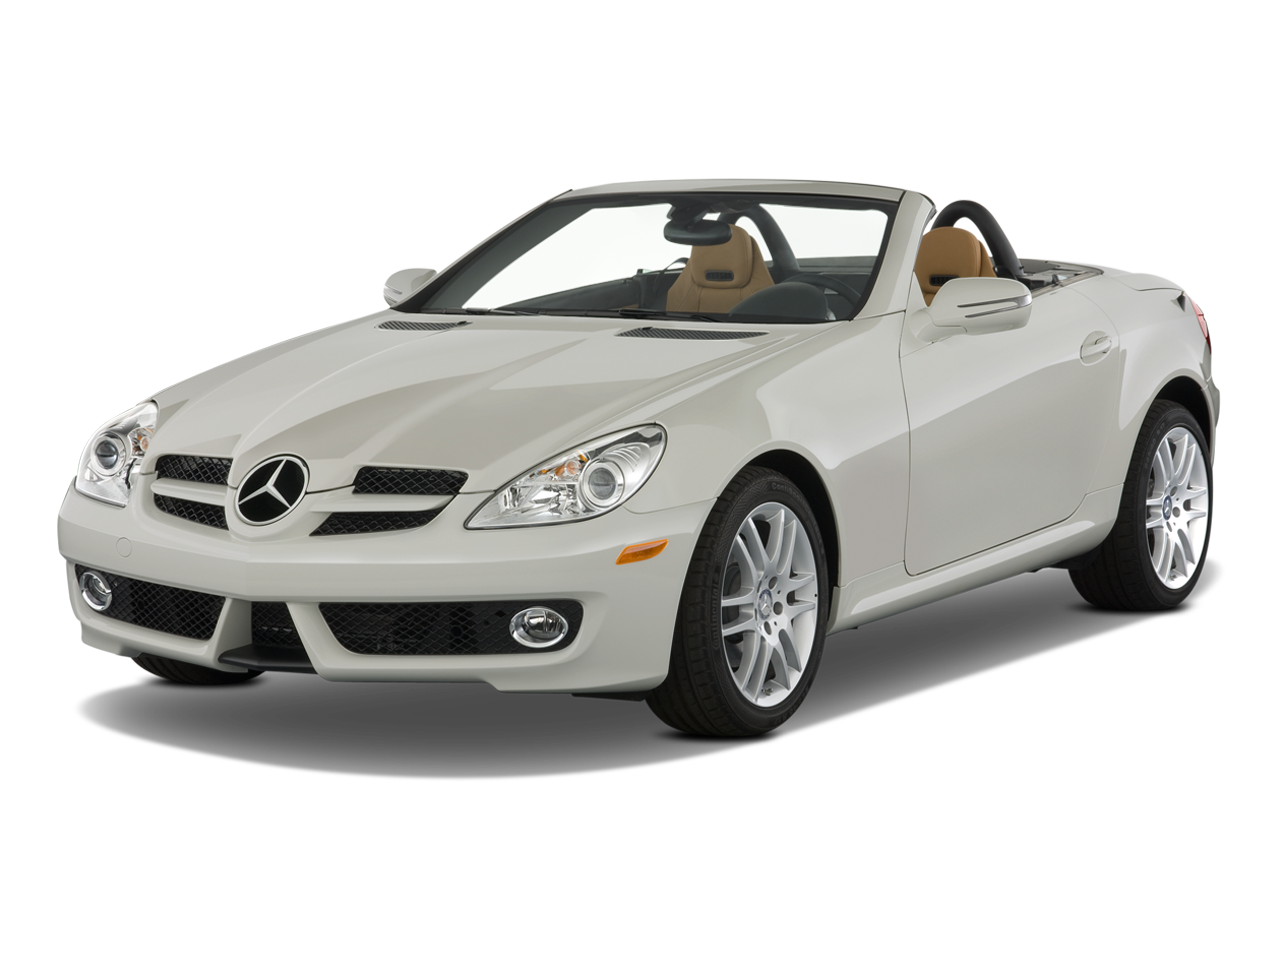 2009 mercedes benz slk350 mercedes benz luxury. Black Bedroom Furniture Sets. Home Design Ideas